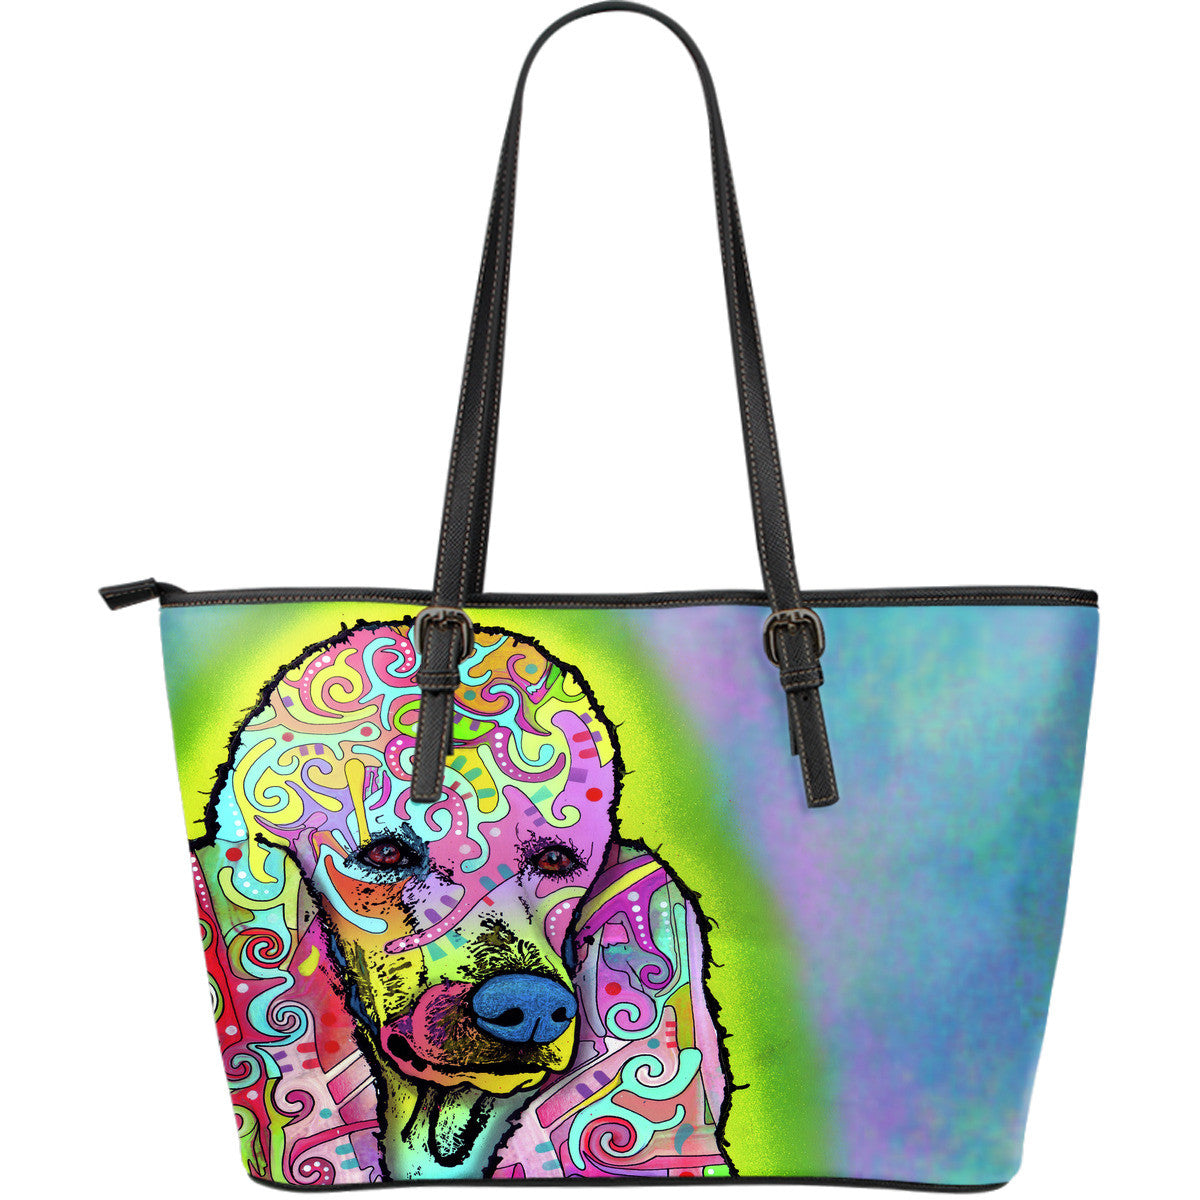 Poodle Leather Tote Bags (Large)